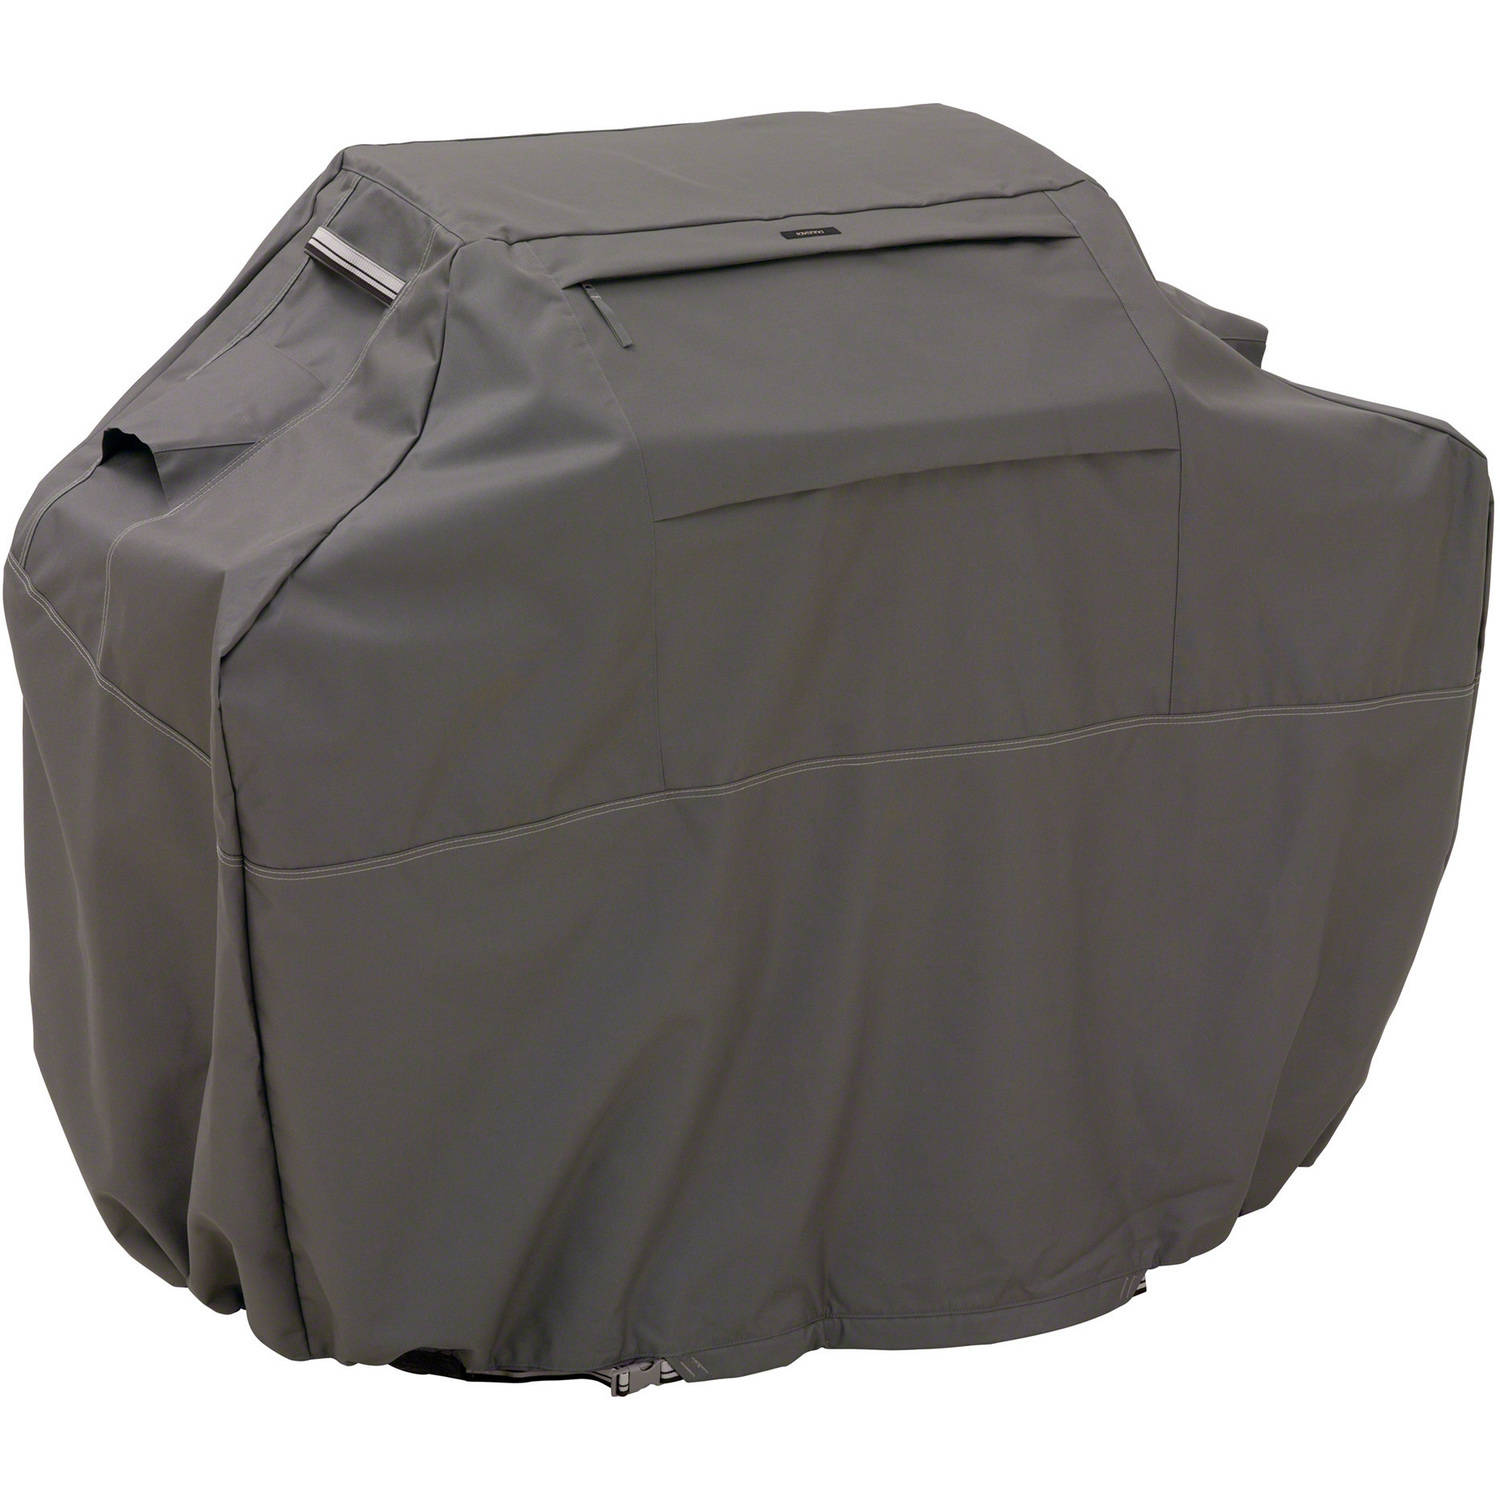 """Classic Accessories Ravenna BBQ Grill Cover, Large, Fits Grills up to 64"""", Taupe"""